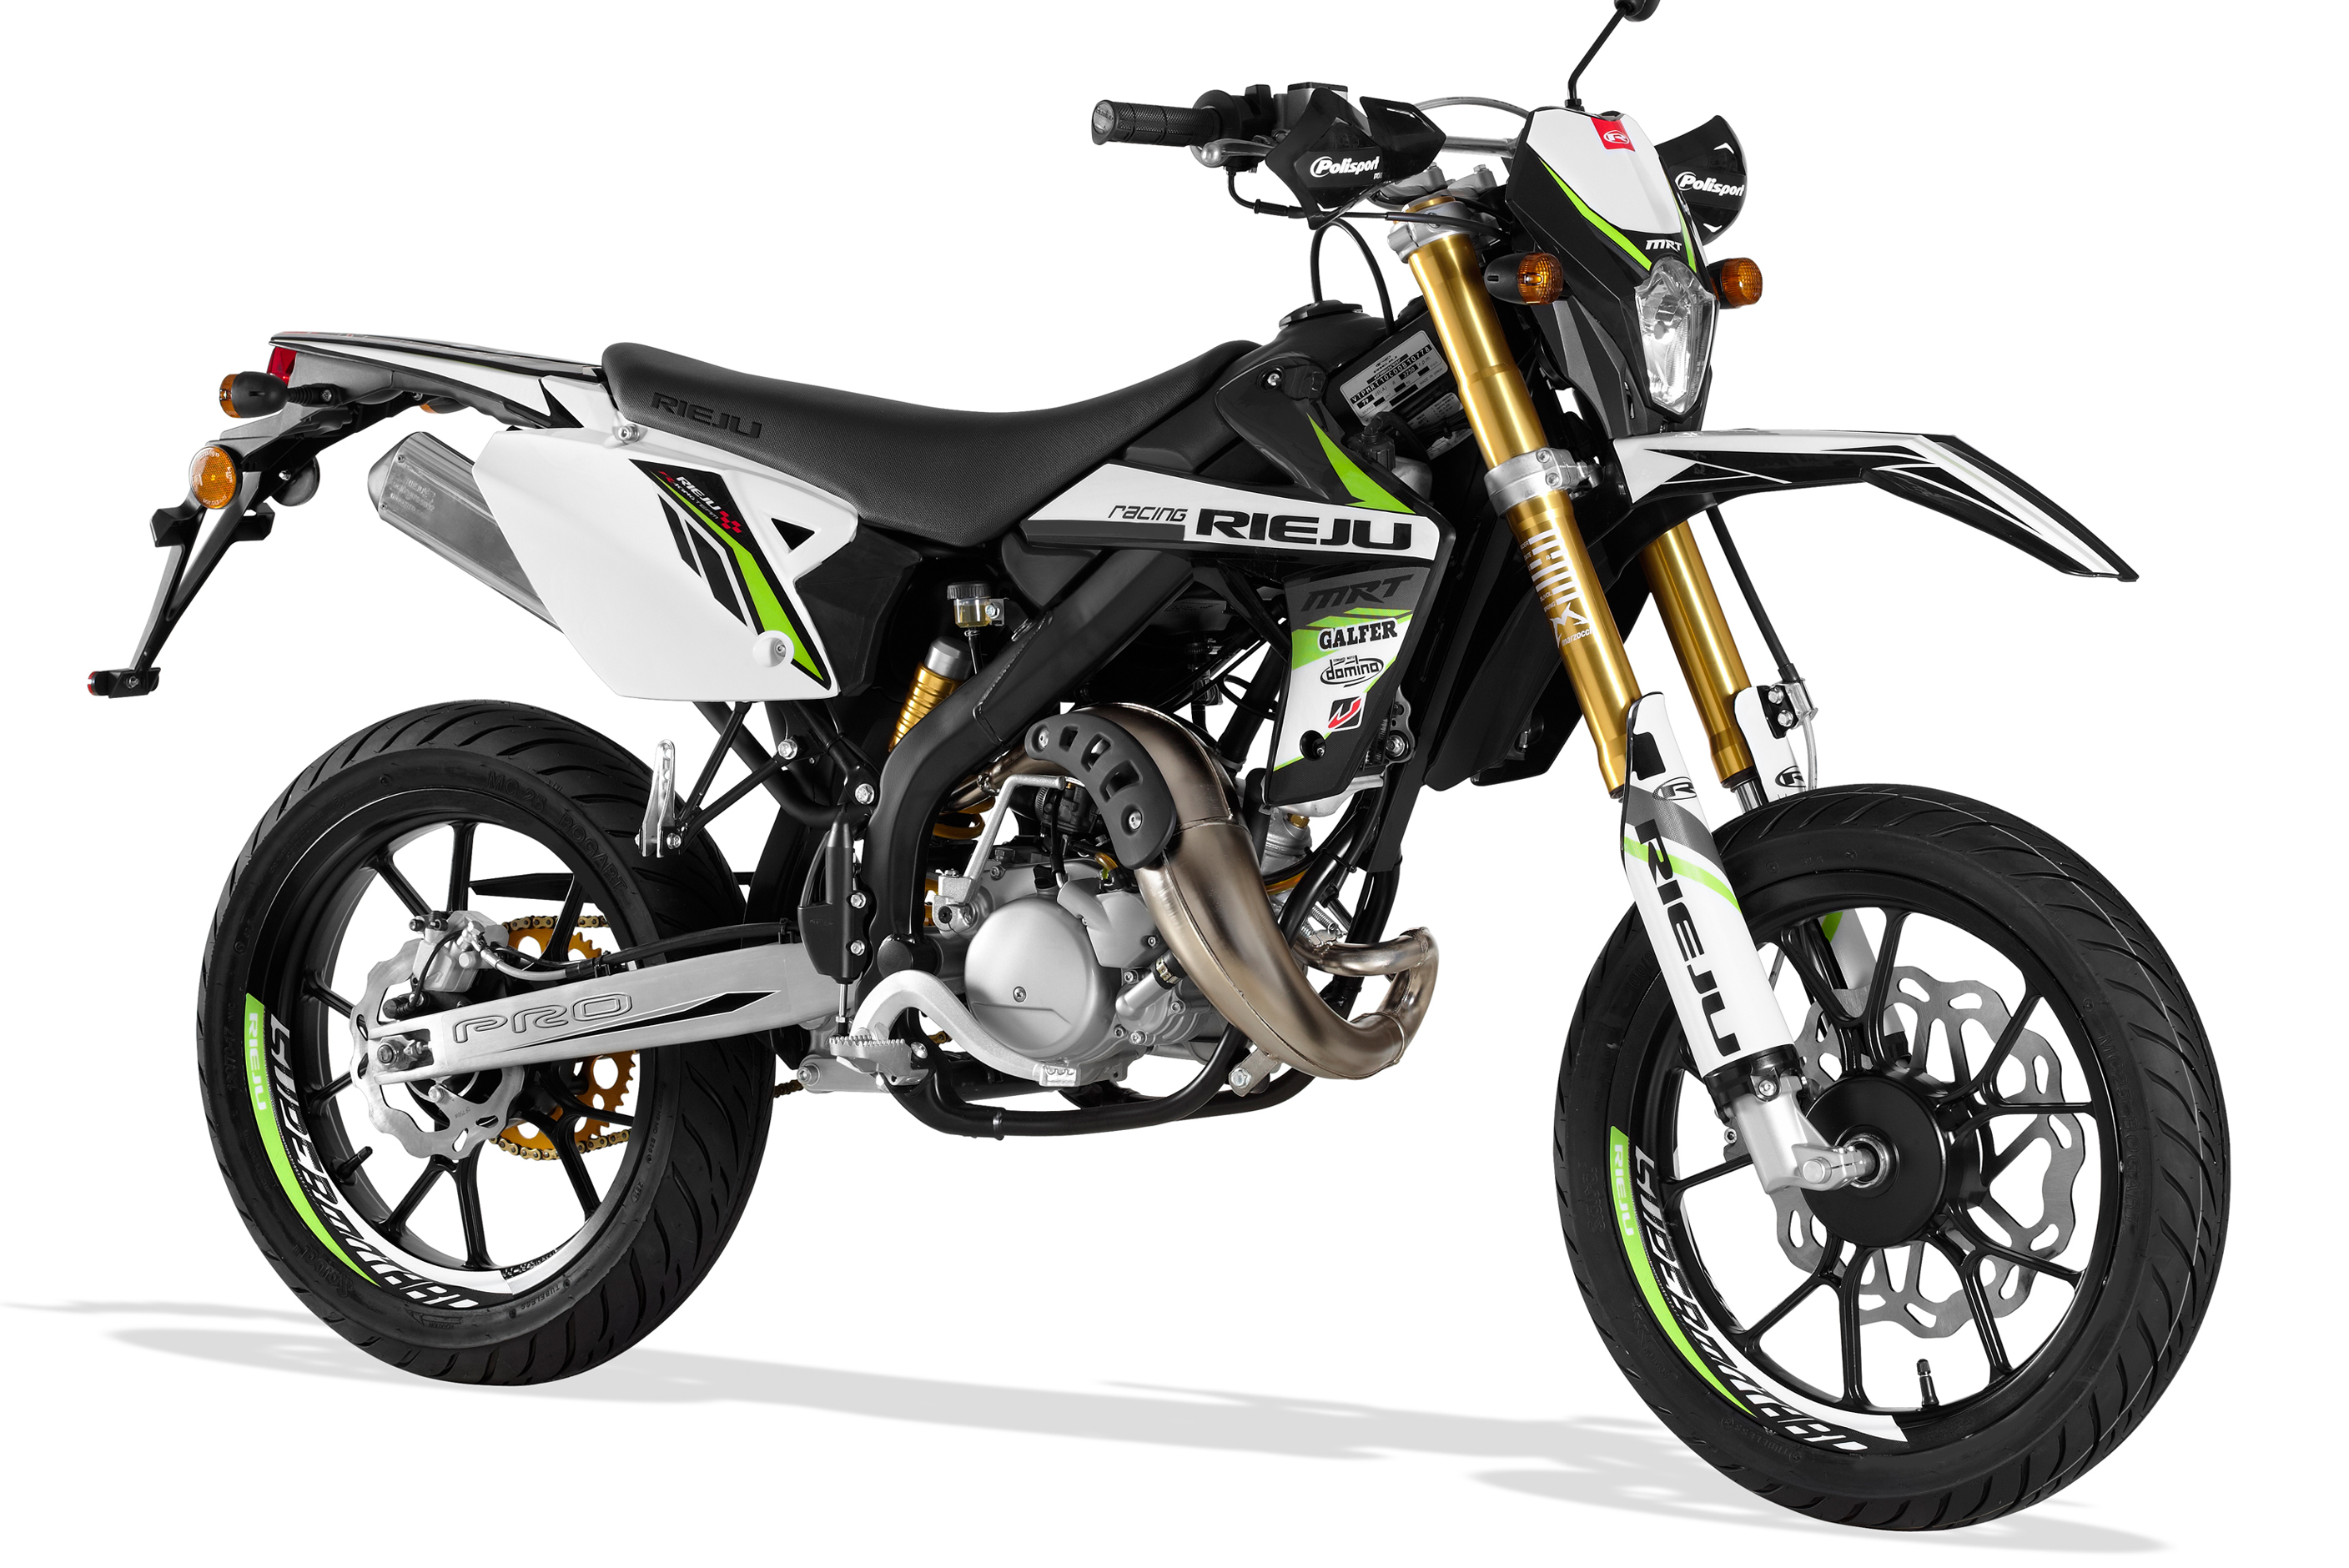 Rieju MRT Pro 50 Supermotard from Fasttrack Motorcycles